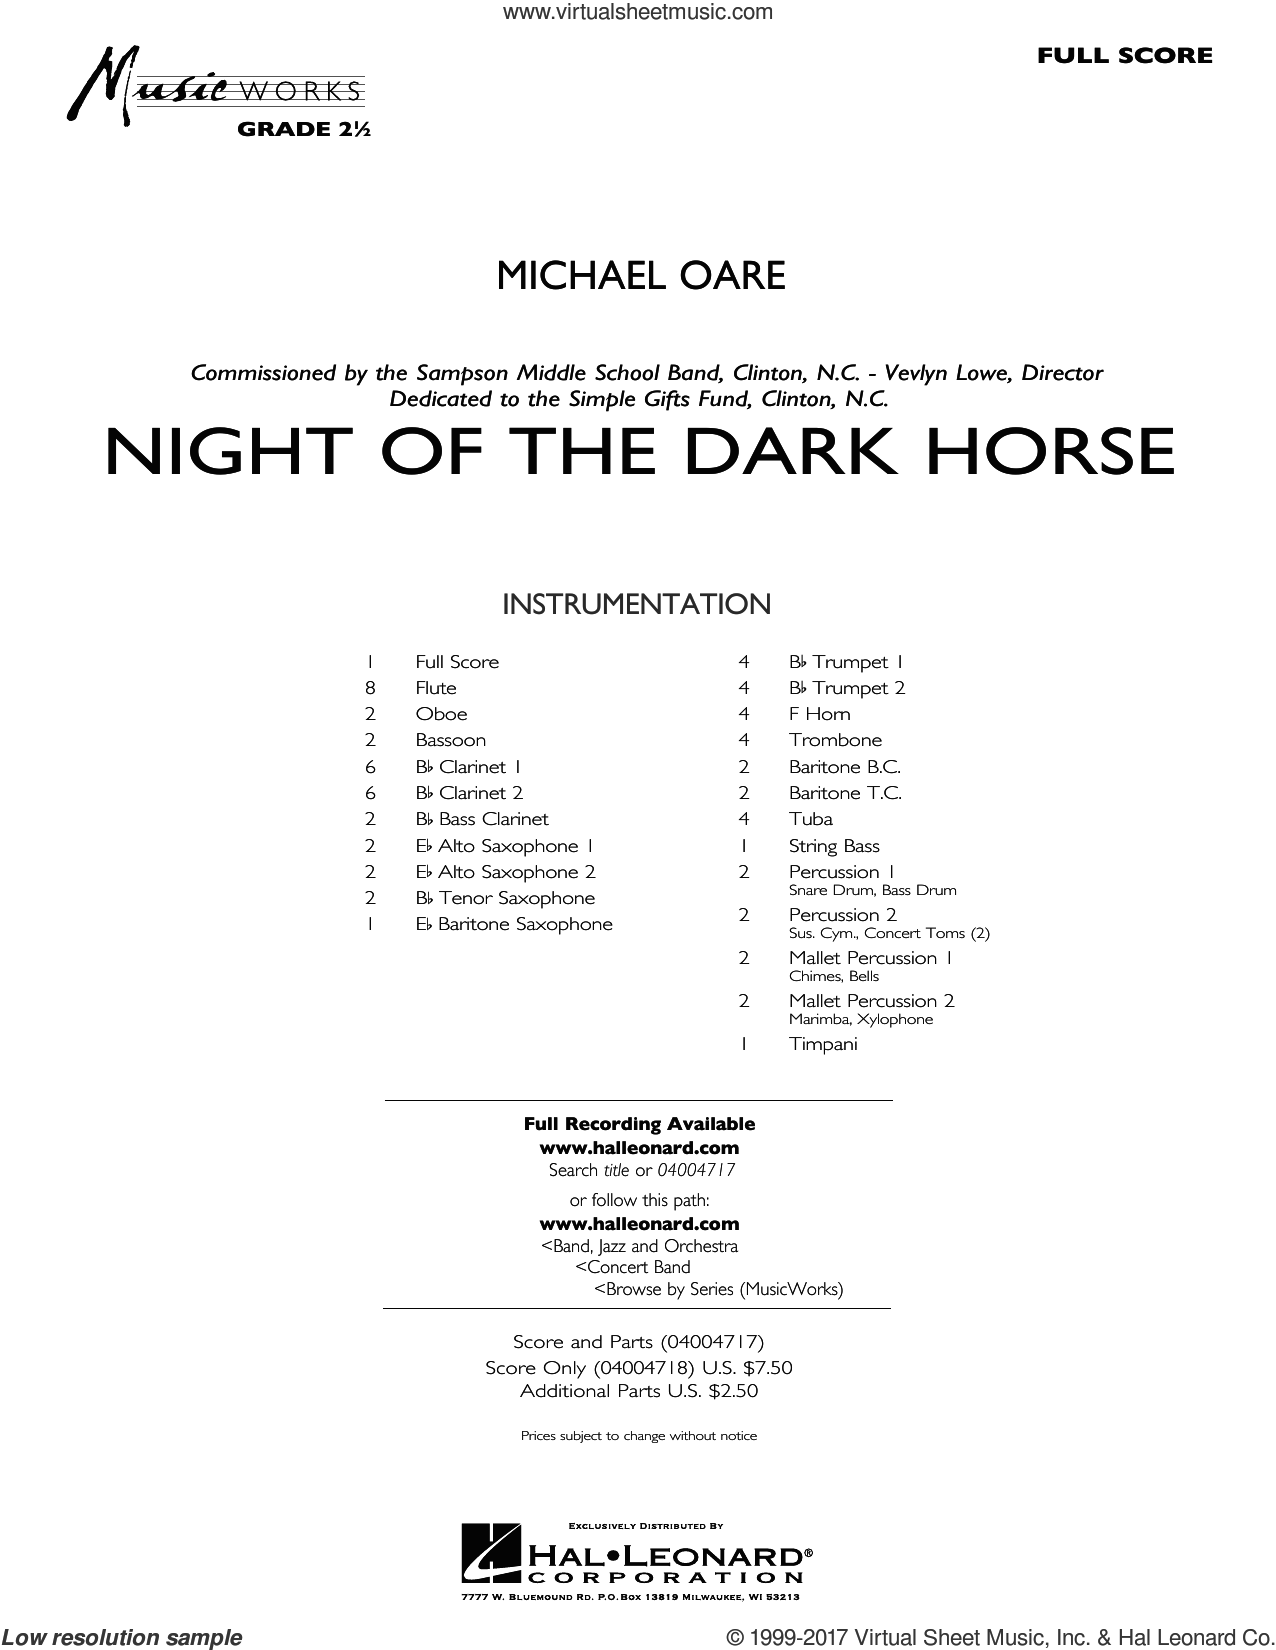 Night of the Dark Horse (COMPLETE) sheet music for concert band by Michael Oare, intermediate skill level